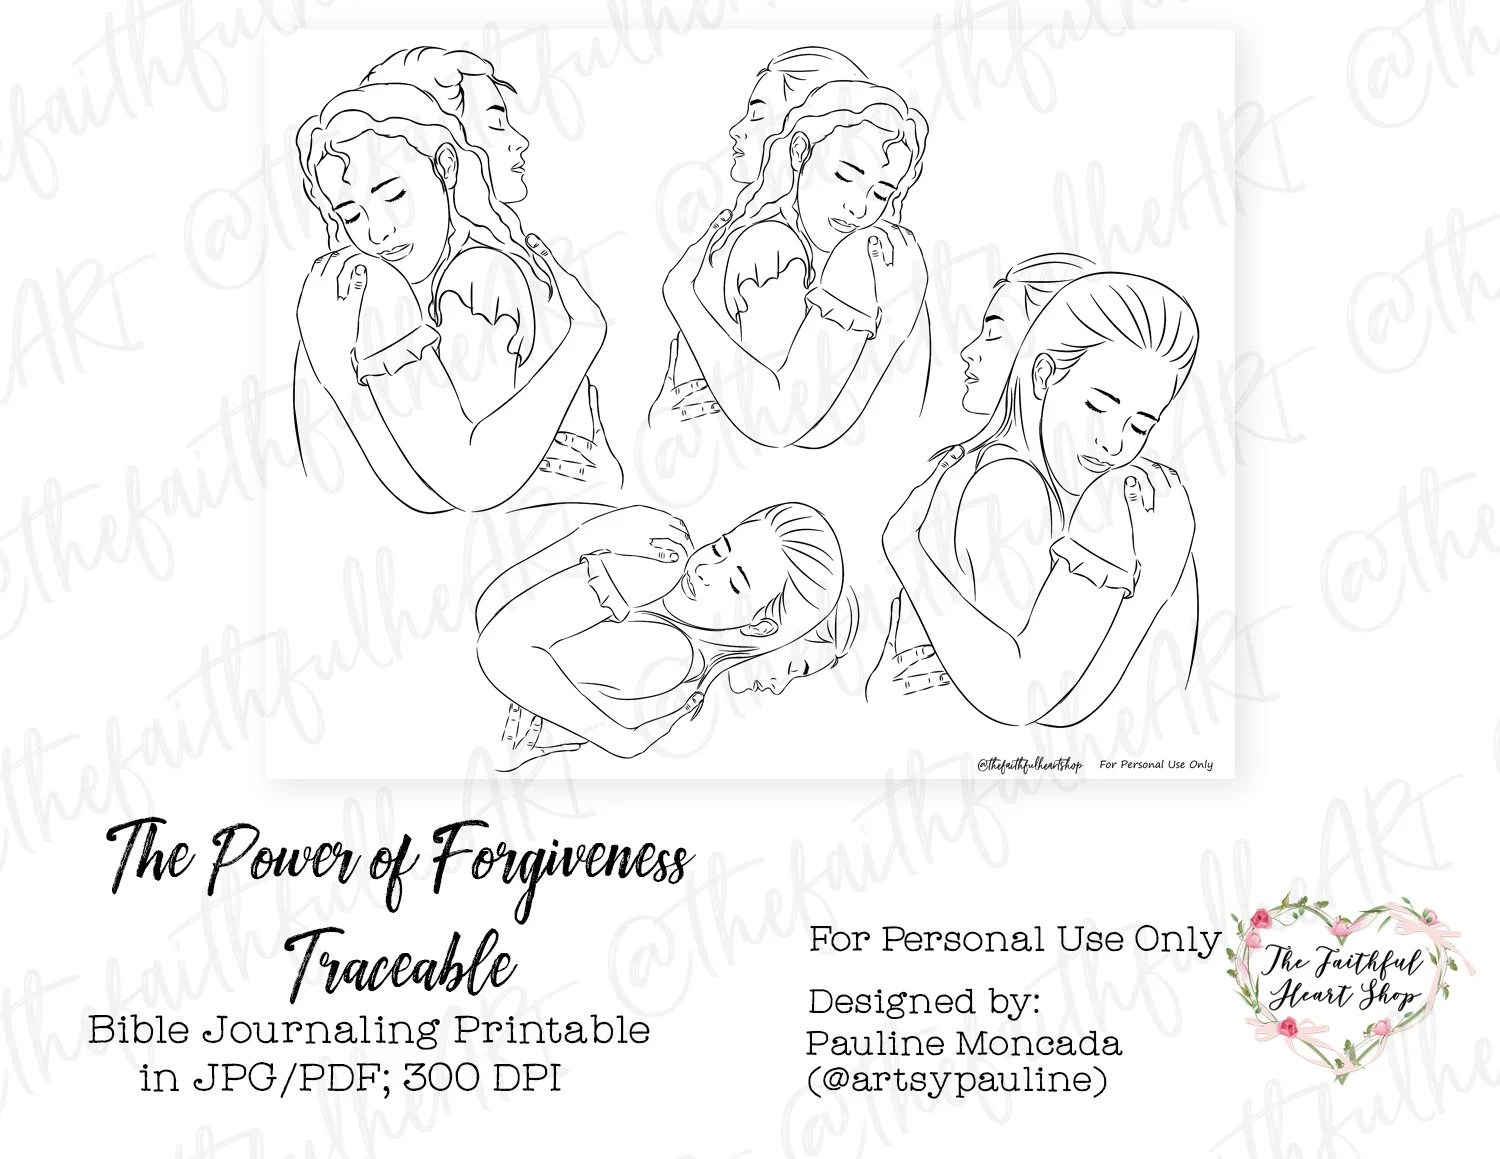 The Power of Forgiveness Traceable. Bible Journaling/Faith